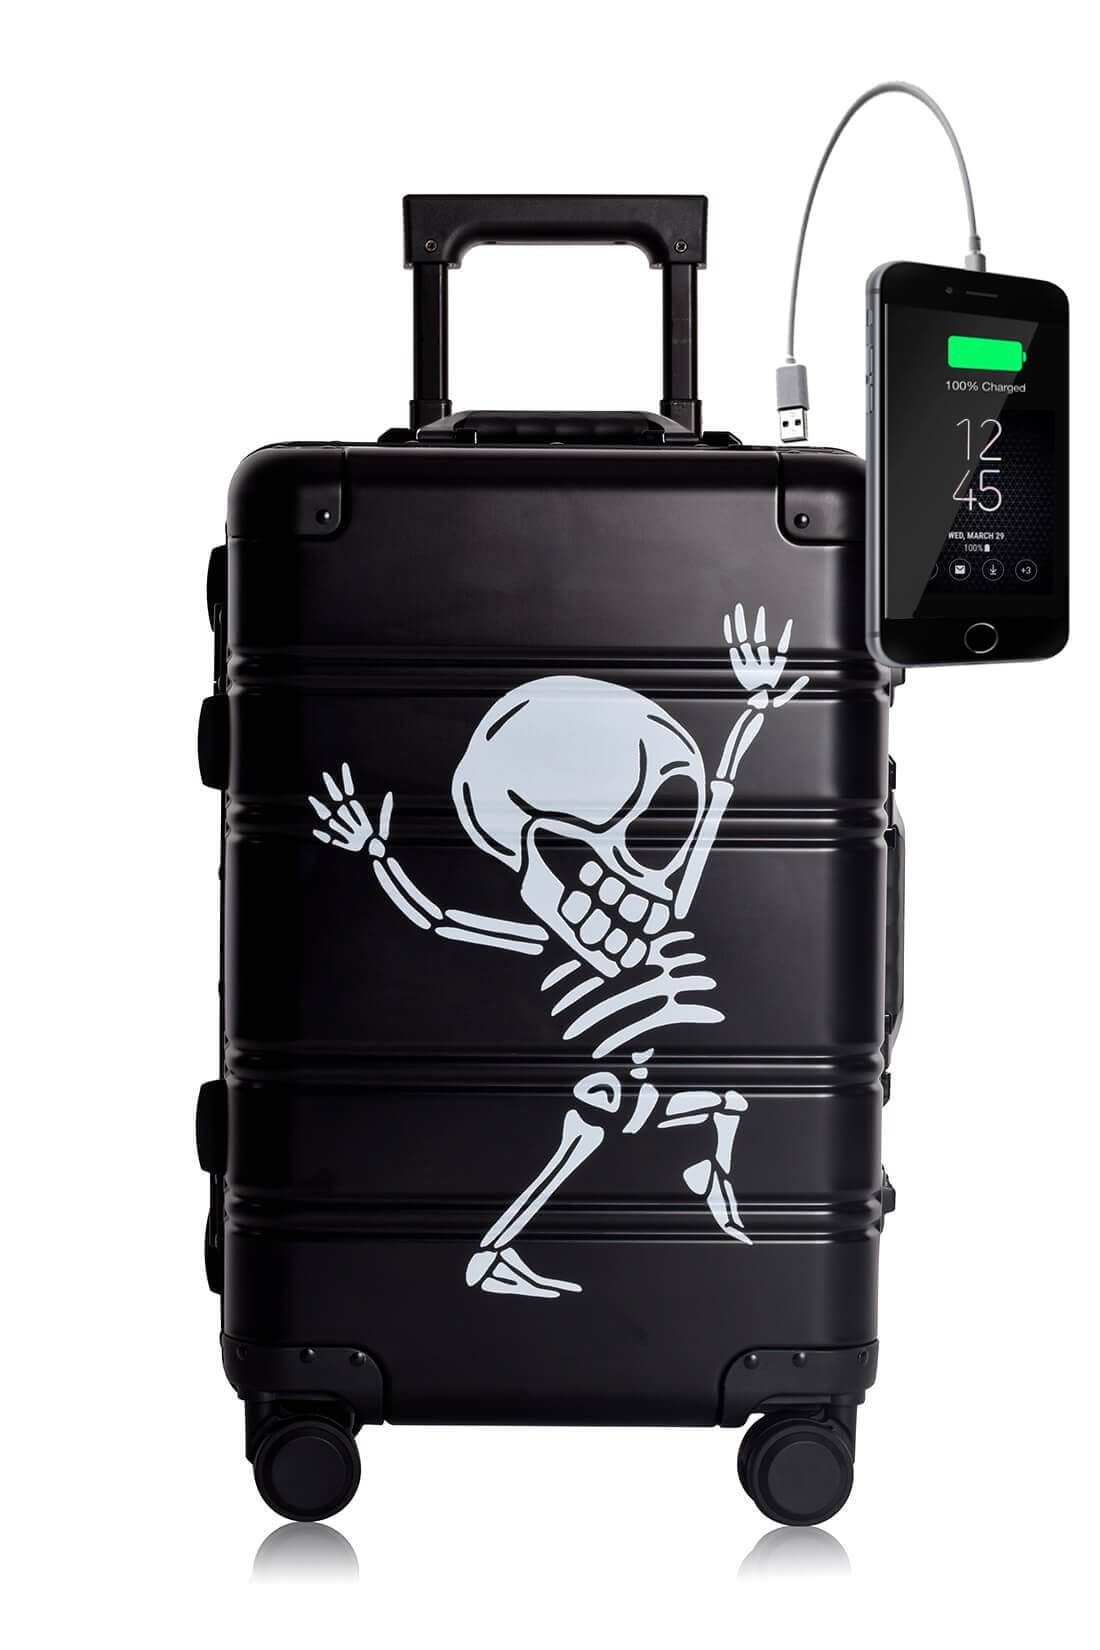 Aluminum Metal Hand Trolley Cabin Luggage Suitcase Online TOKYOTO BLACK SKULL